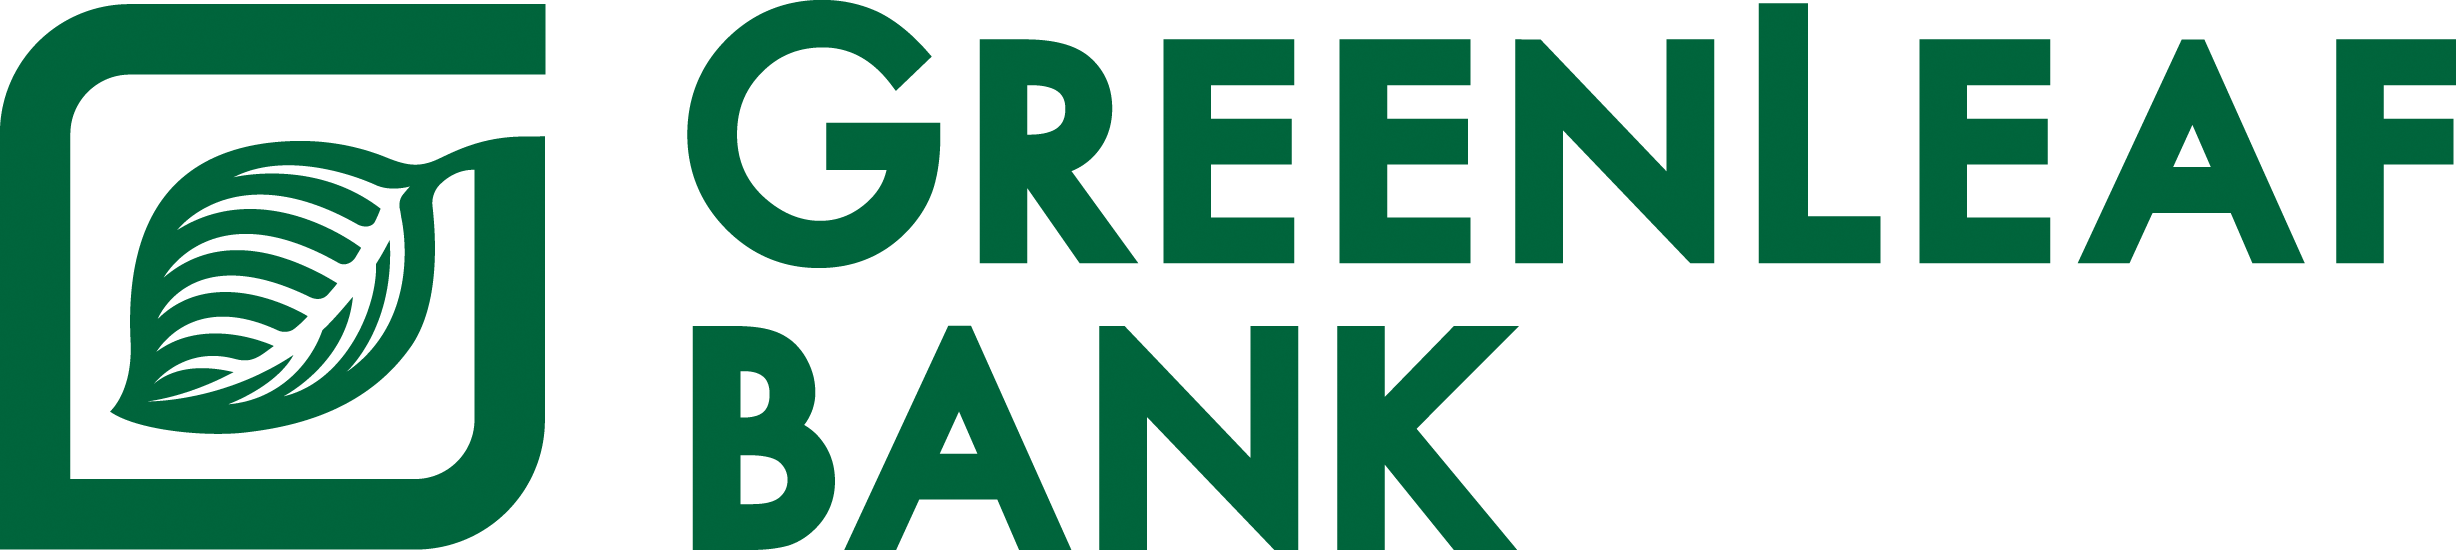 GreenLeaf Bank logo